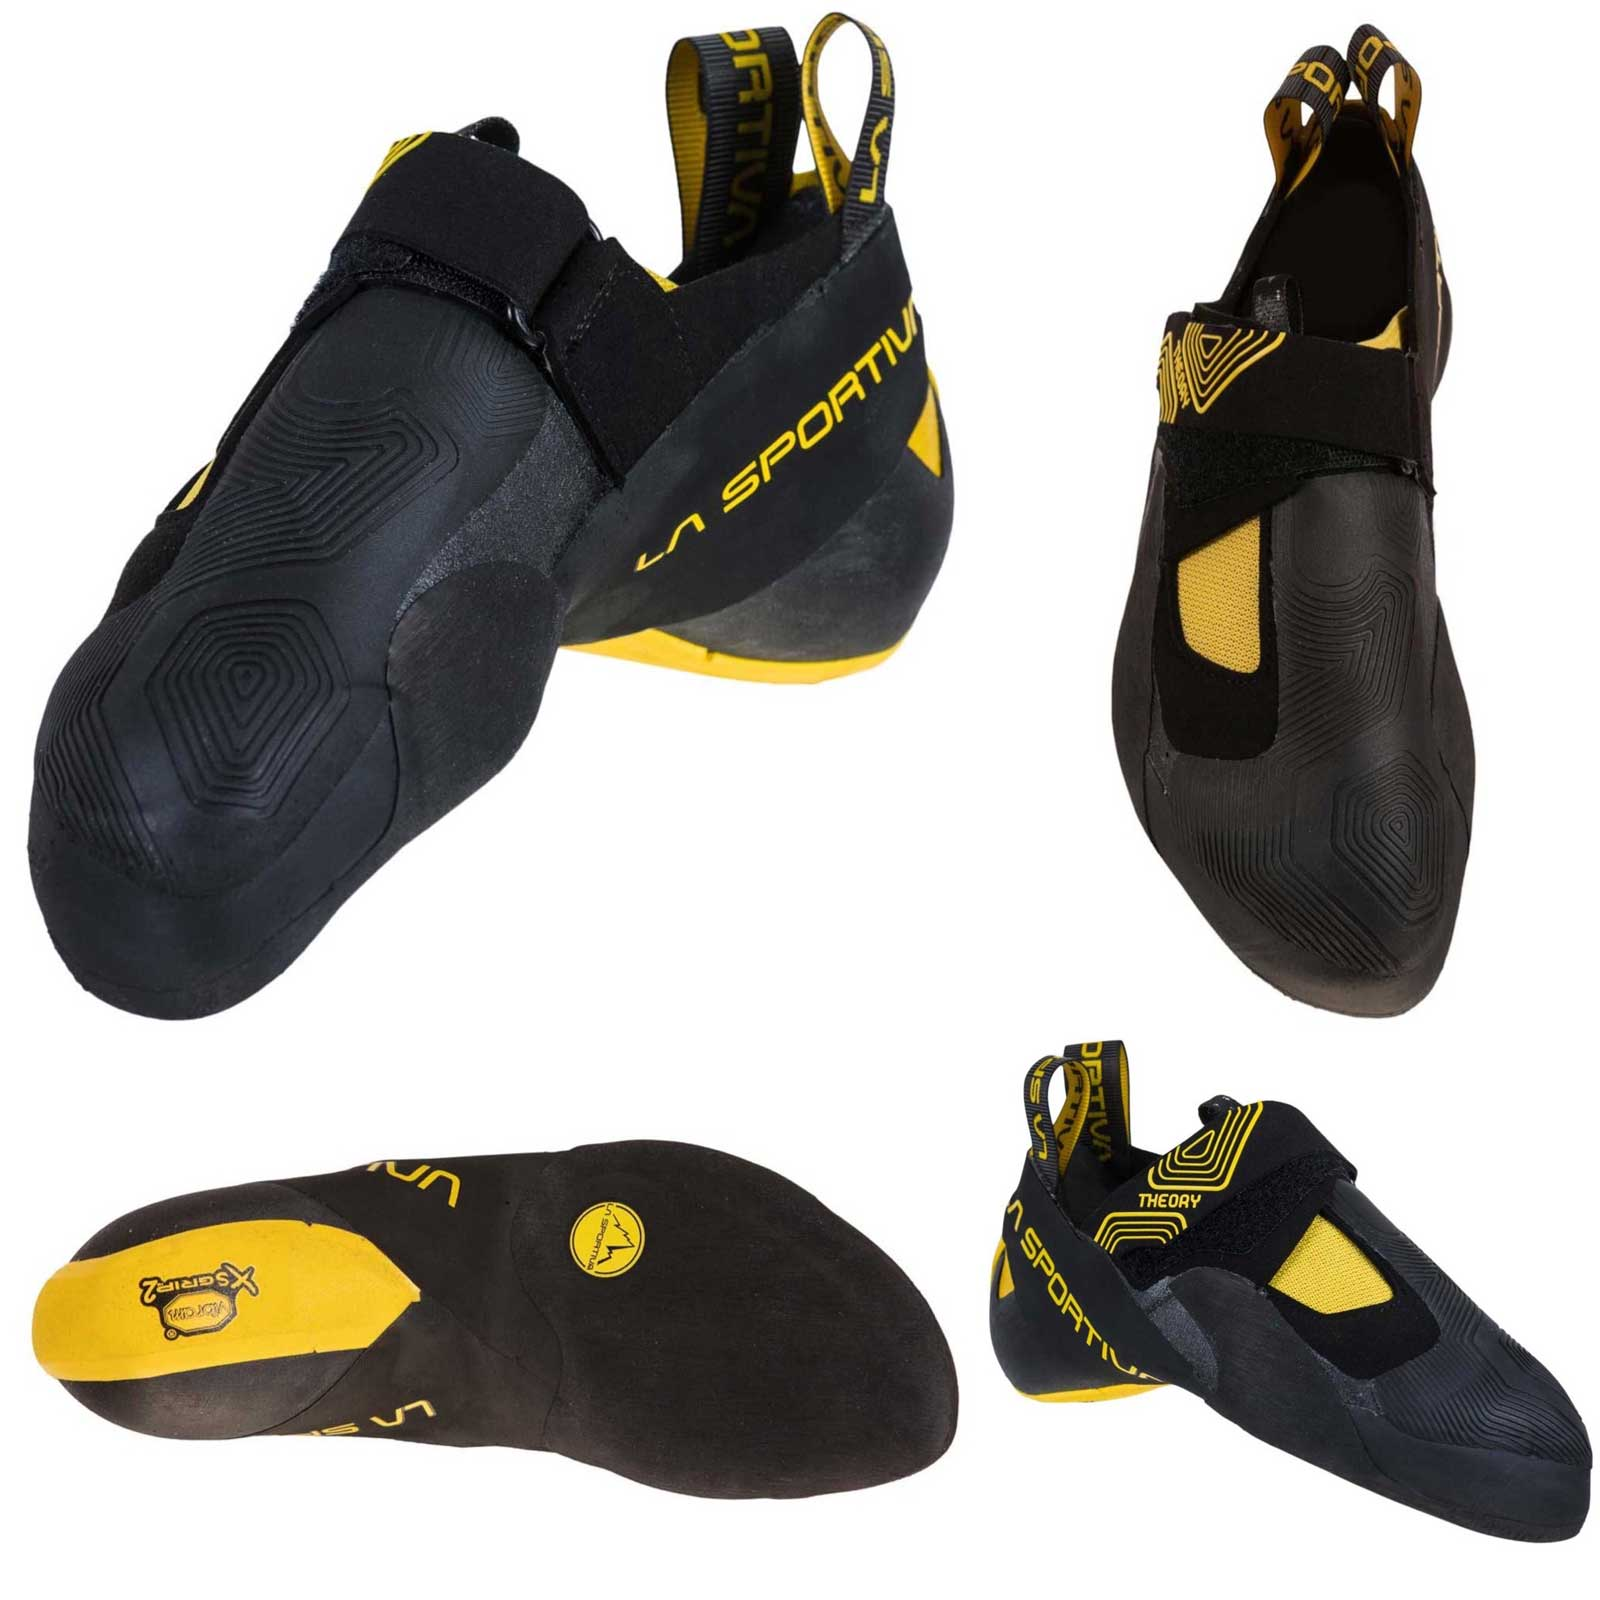 La Sportiva Theory Rock Climbing Shoe Gear Review